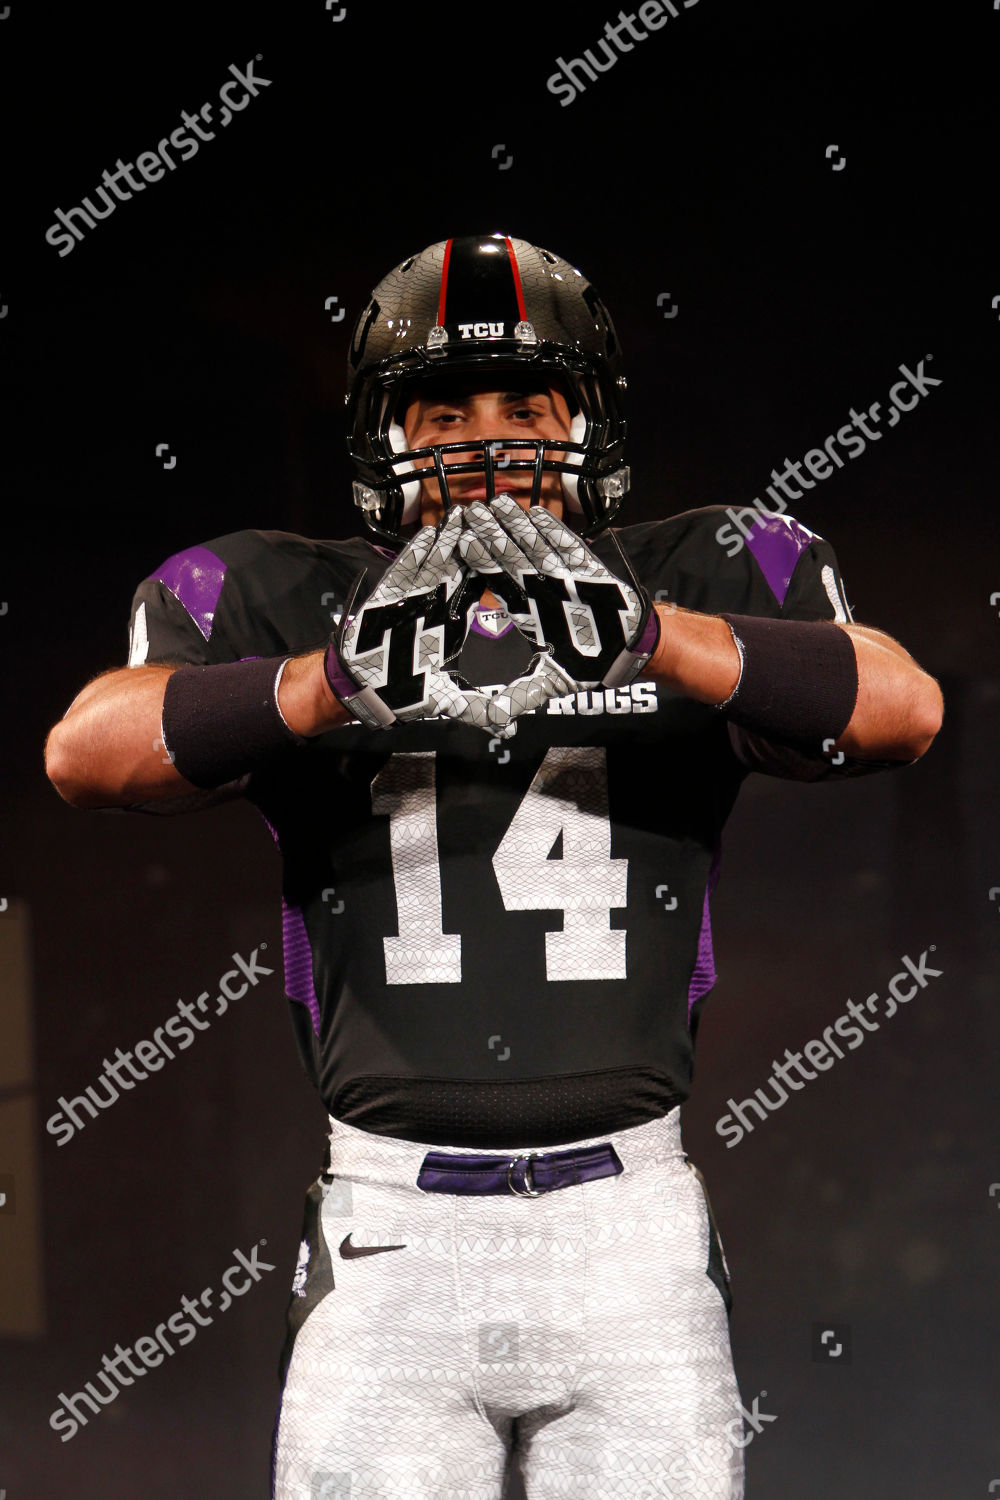 861c700da model wears new TCU Nike football uniform Editorial Stock Photo ...